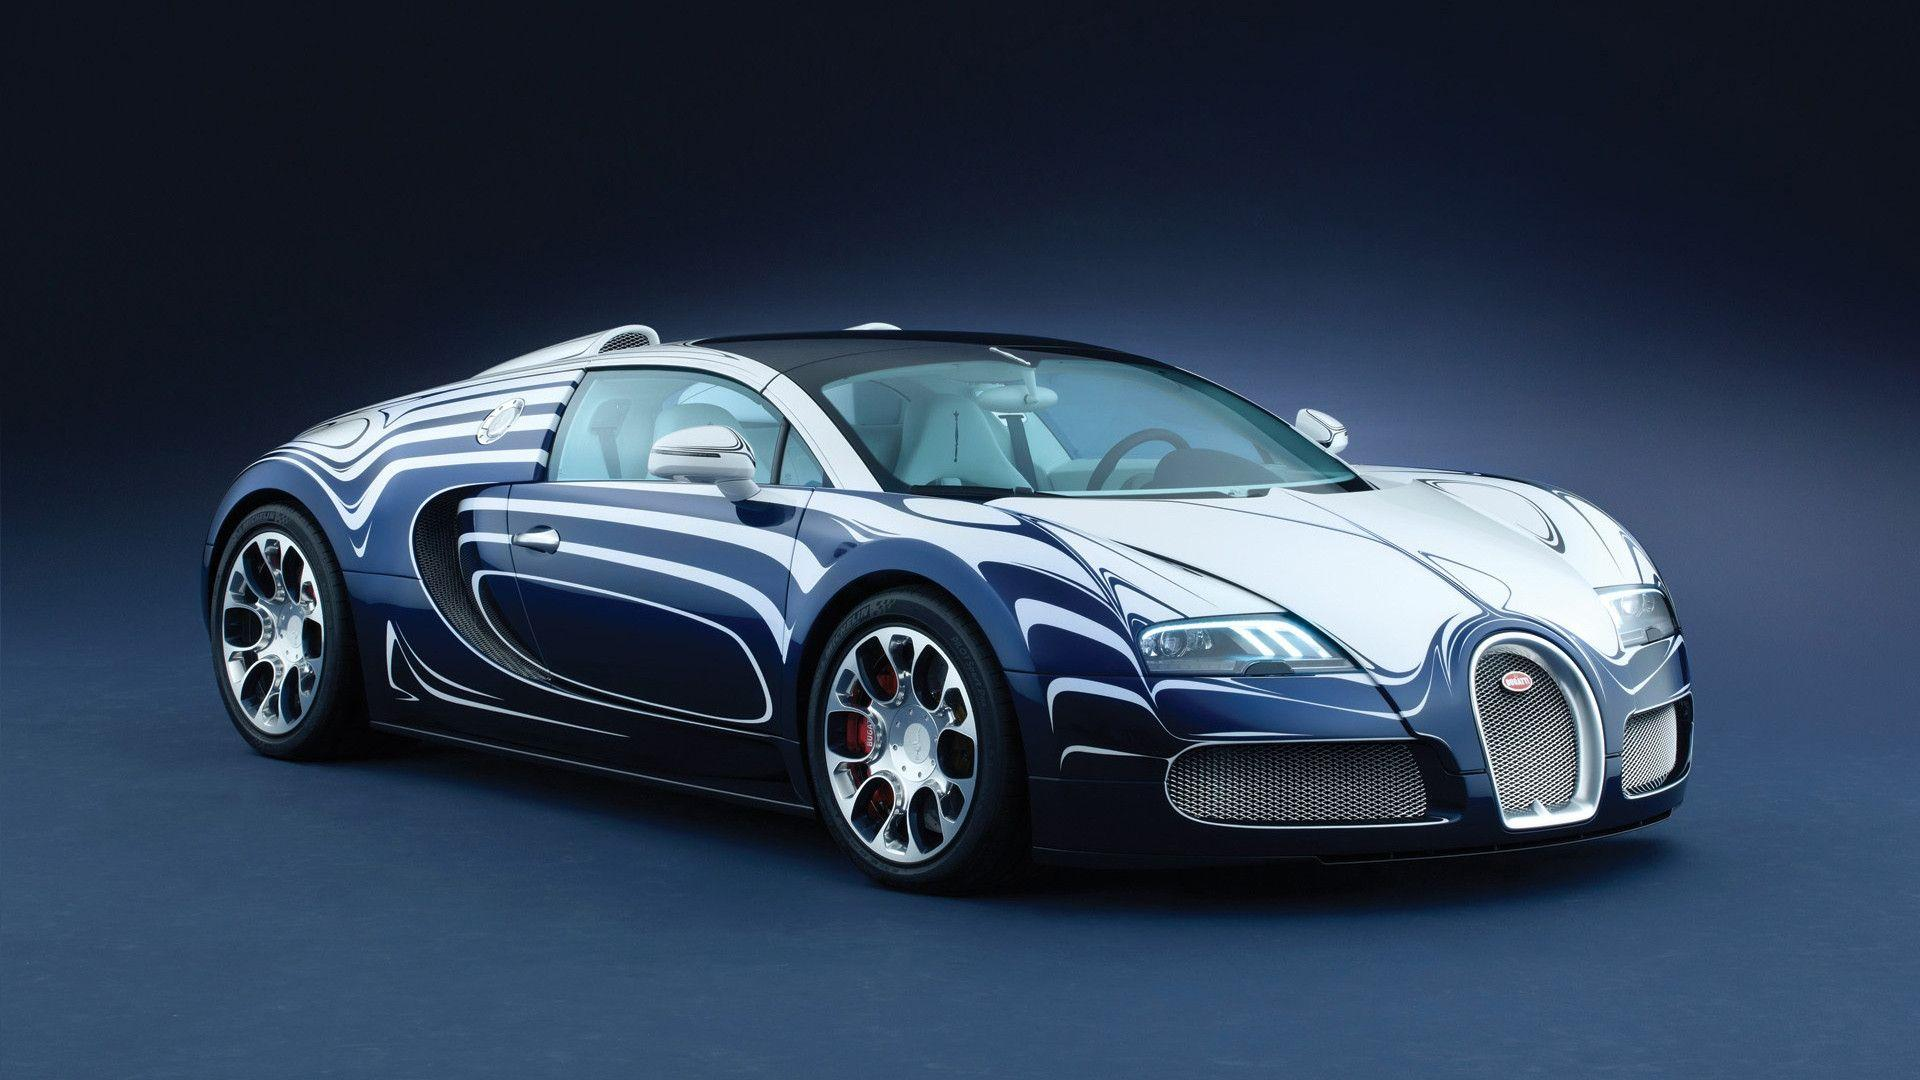 Bugatti Wallpapers On Wallpaperdog